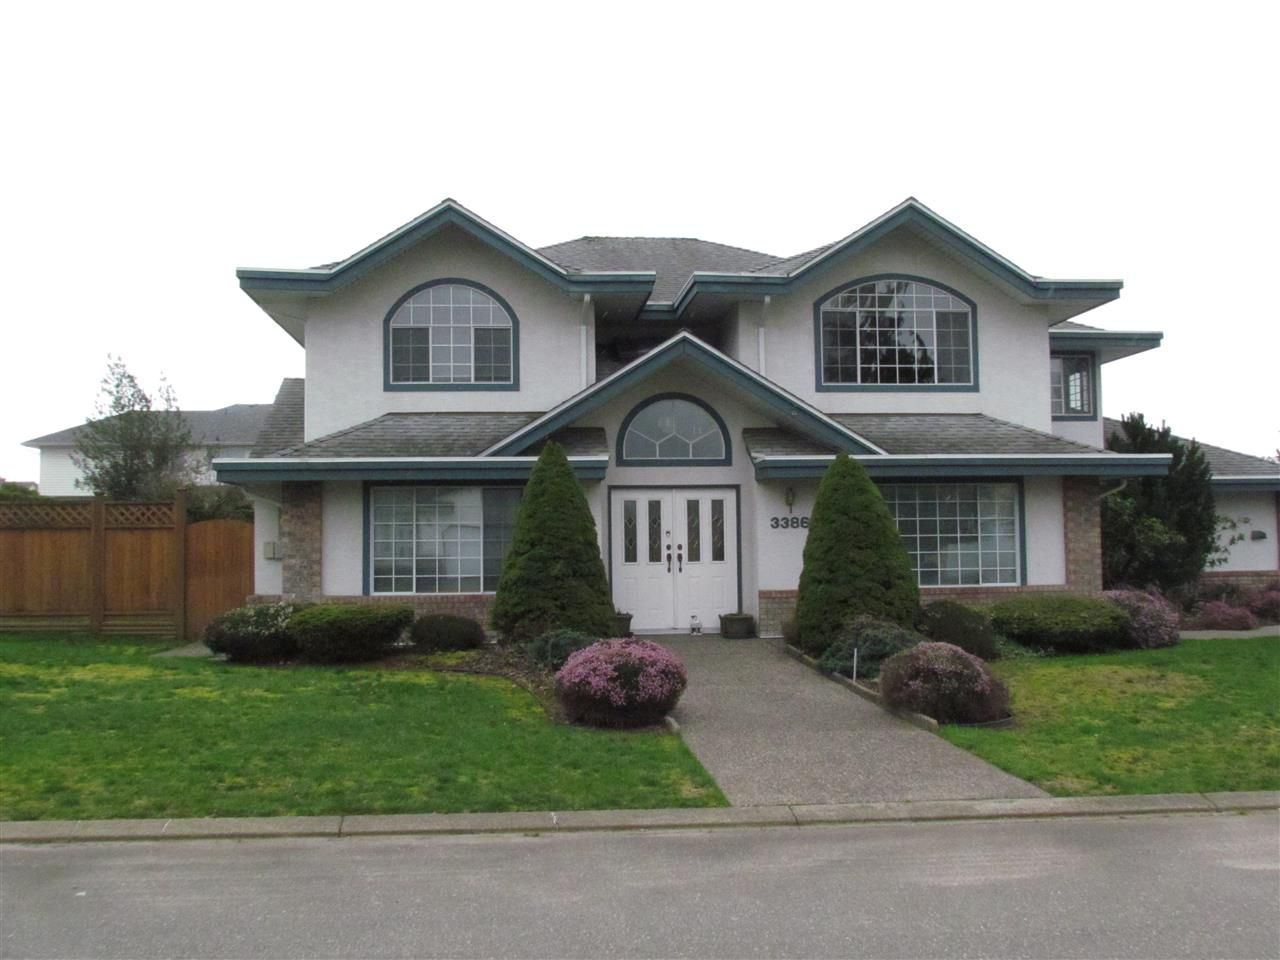 Main Photo: 3386 SLOCAN Drive in Abbotsford: Abbotsford West House for sale : MLS®# R2044628